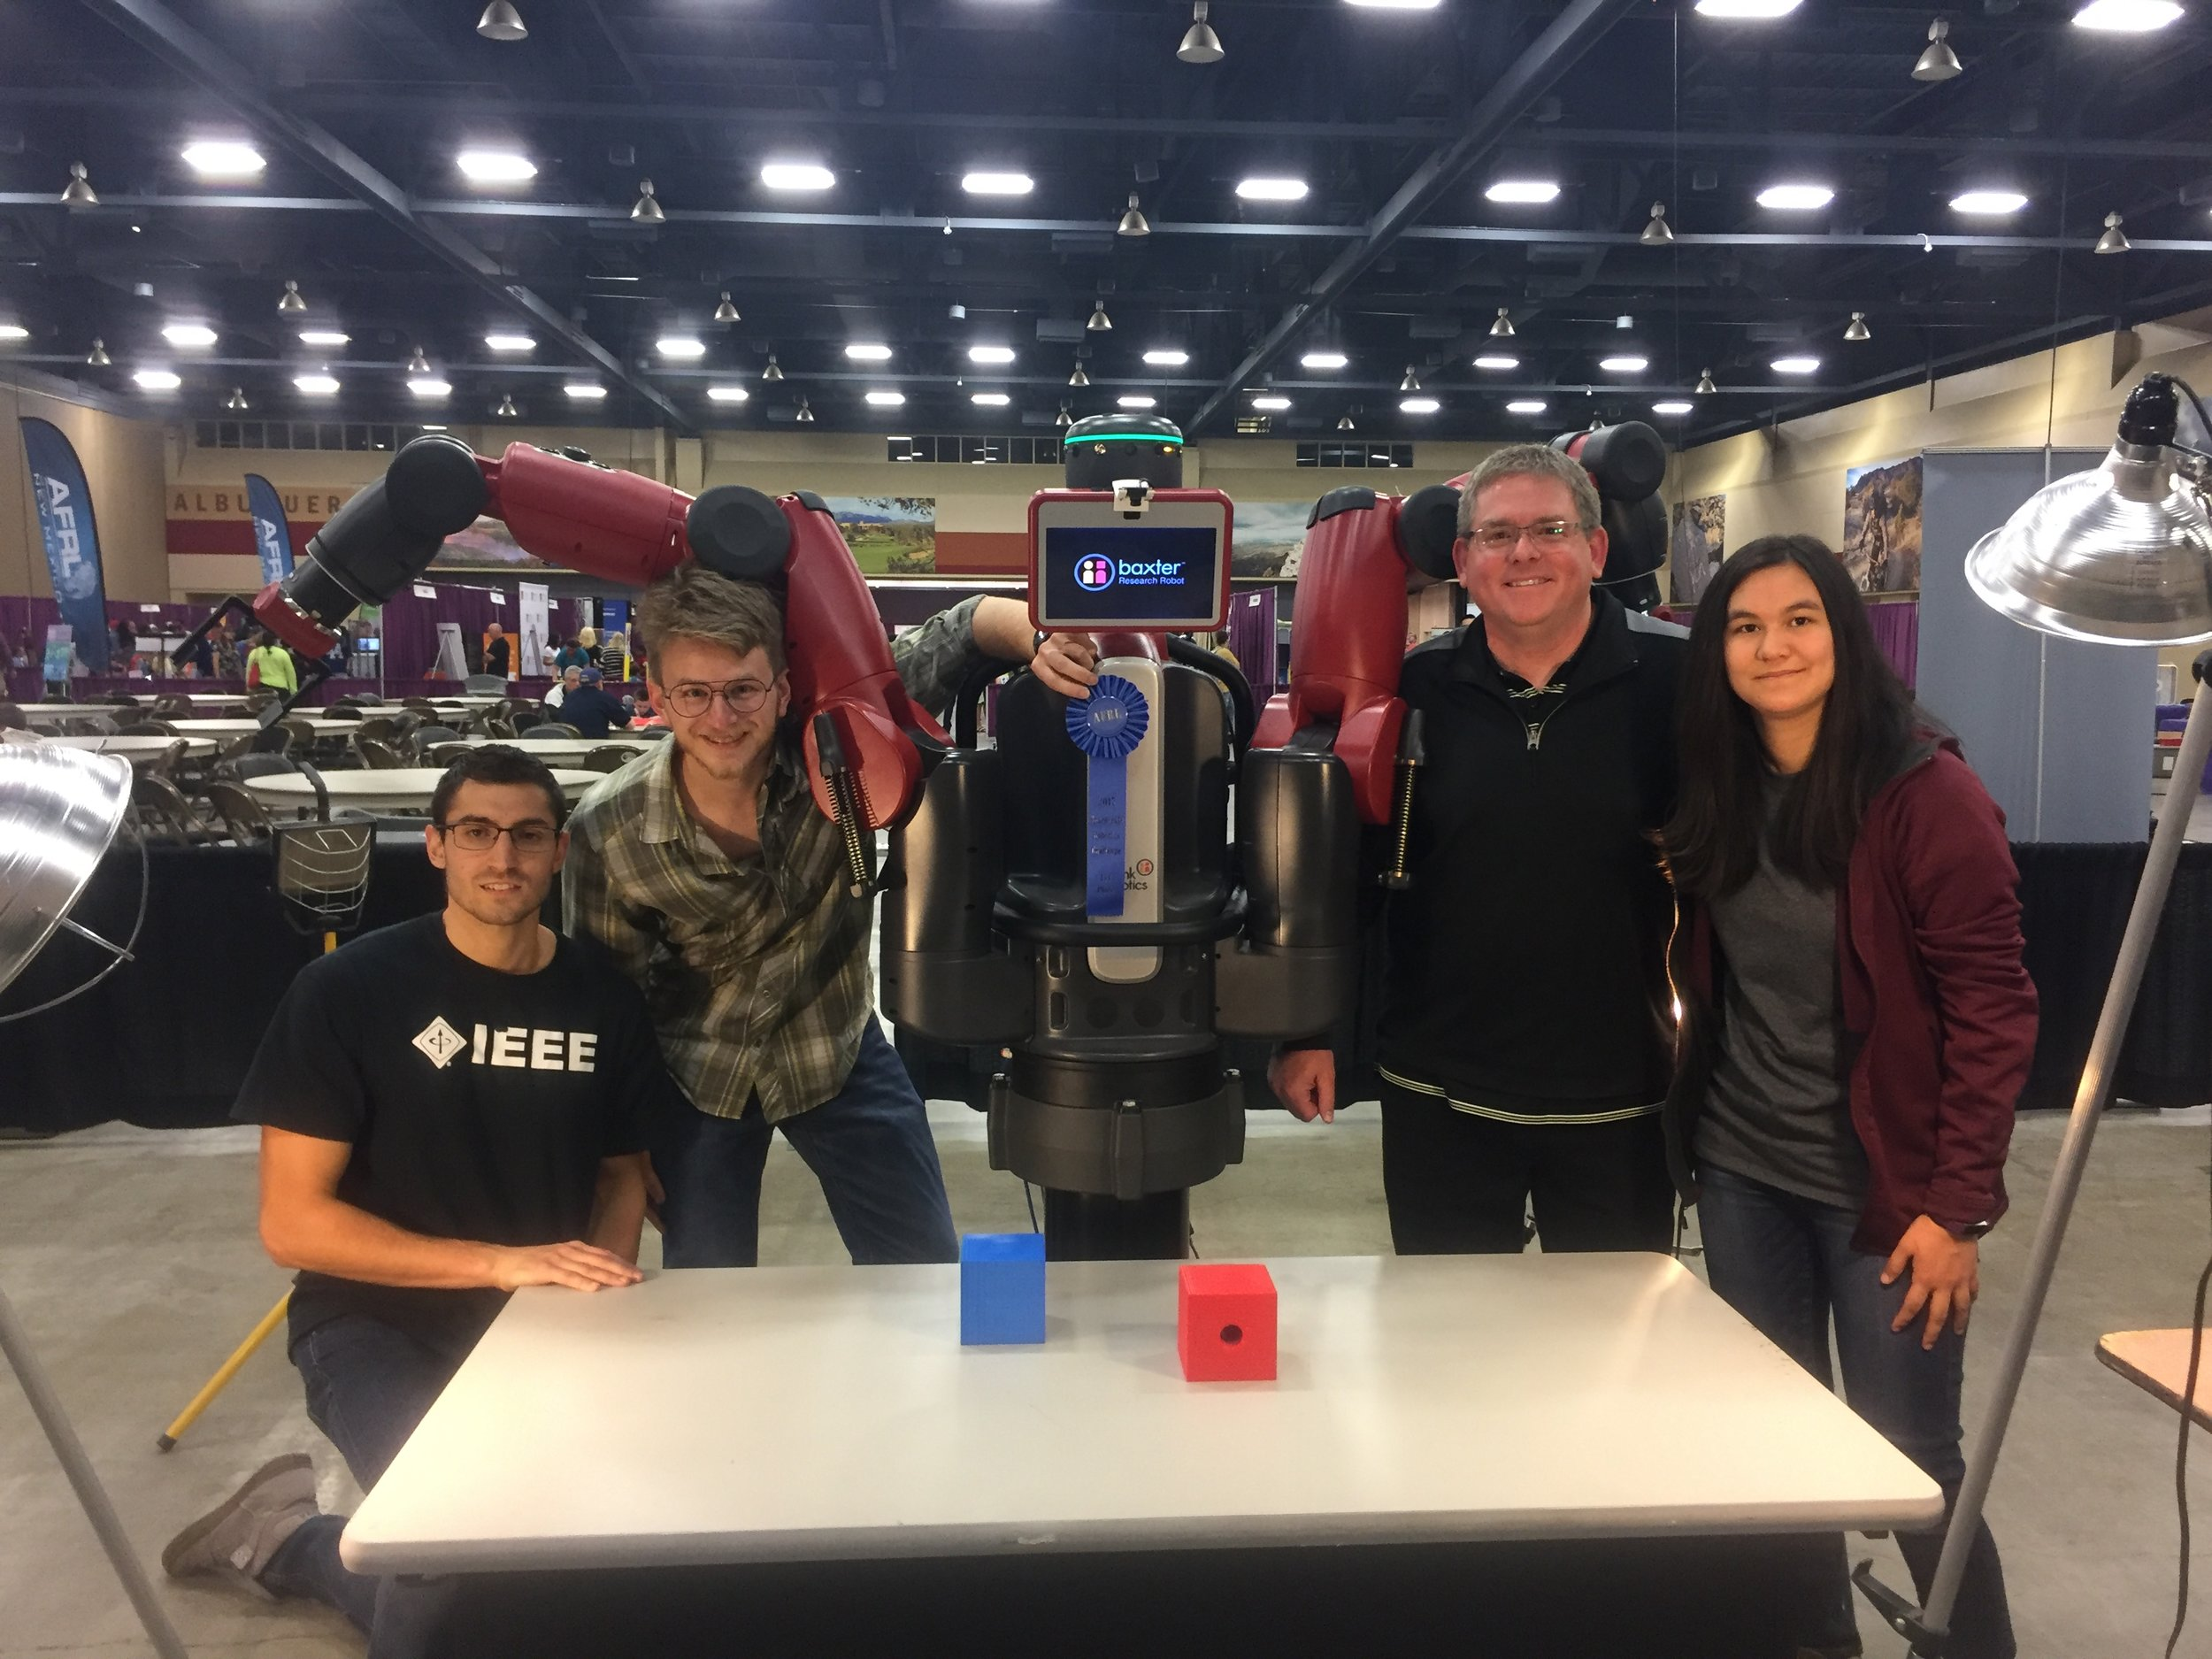 1st place team pictured: Steve Maurice, Travis Taylor, Joseph Kloeppel and Rebecca Kreitinger.